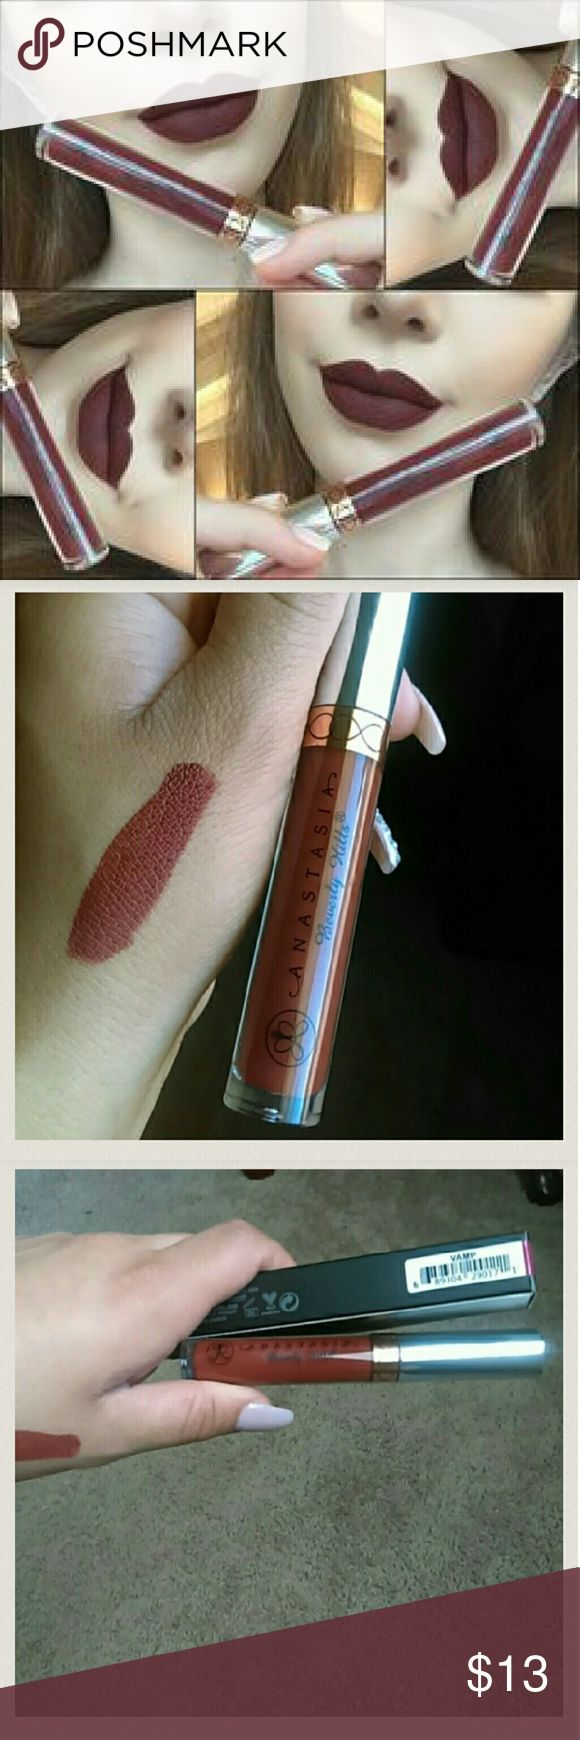 Anastasia Vamp Brand new in box Vamp got from third party authenticity unknown $13 firm Makeup Lipstick